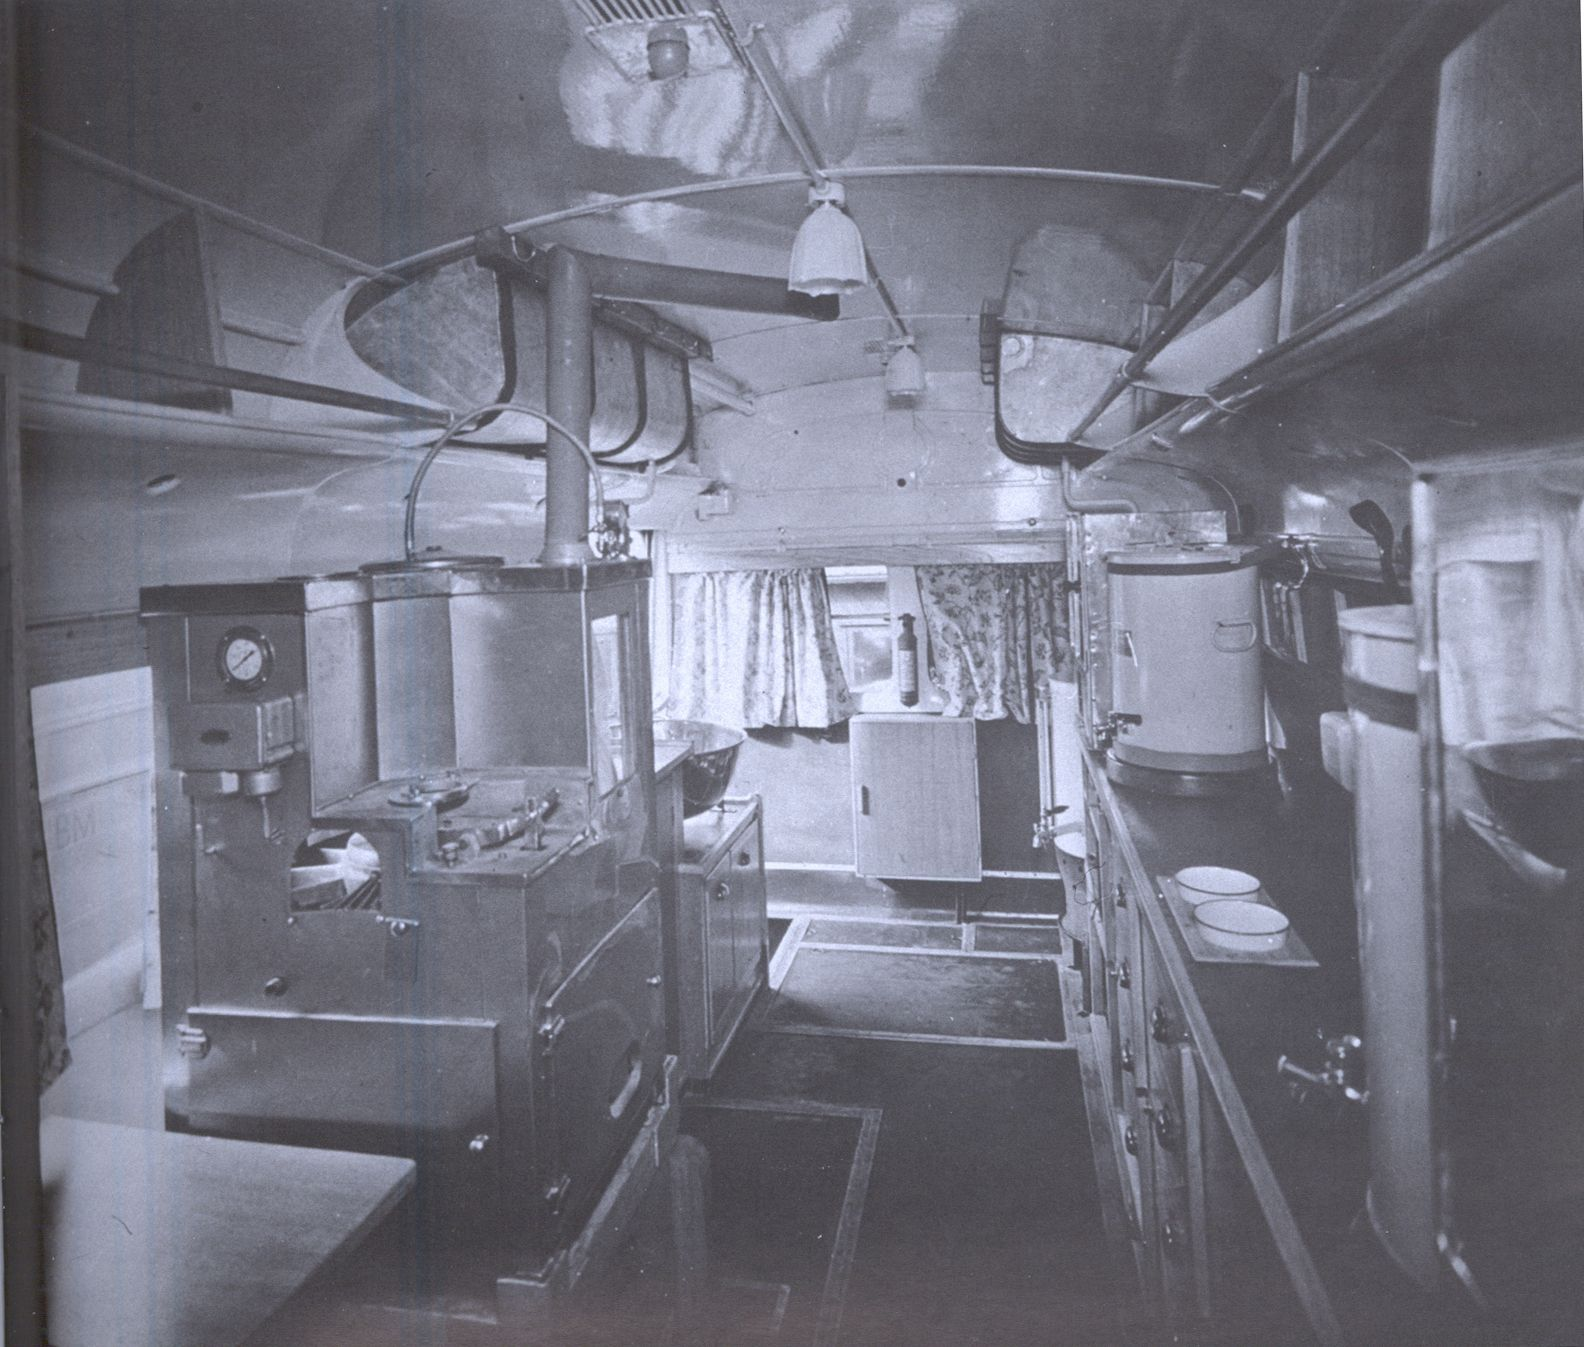 The inside of a London bus converted into a clubmobile for serving coffee and doughnuts.